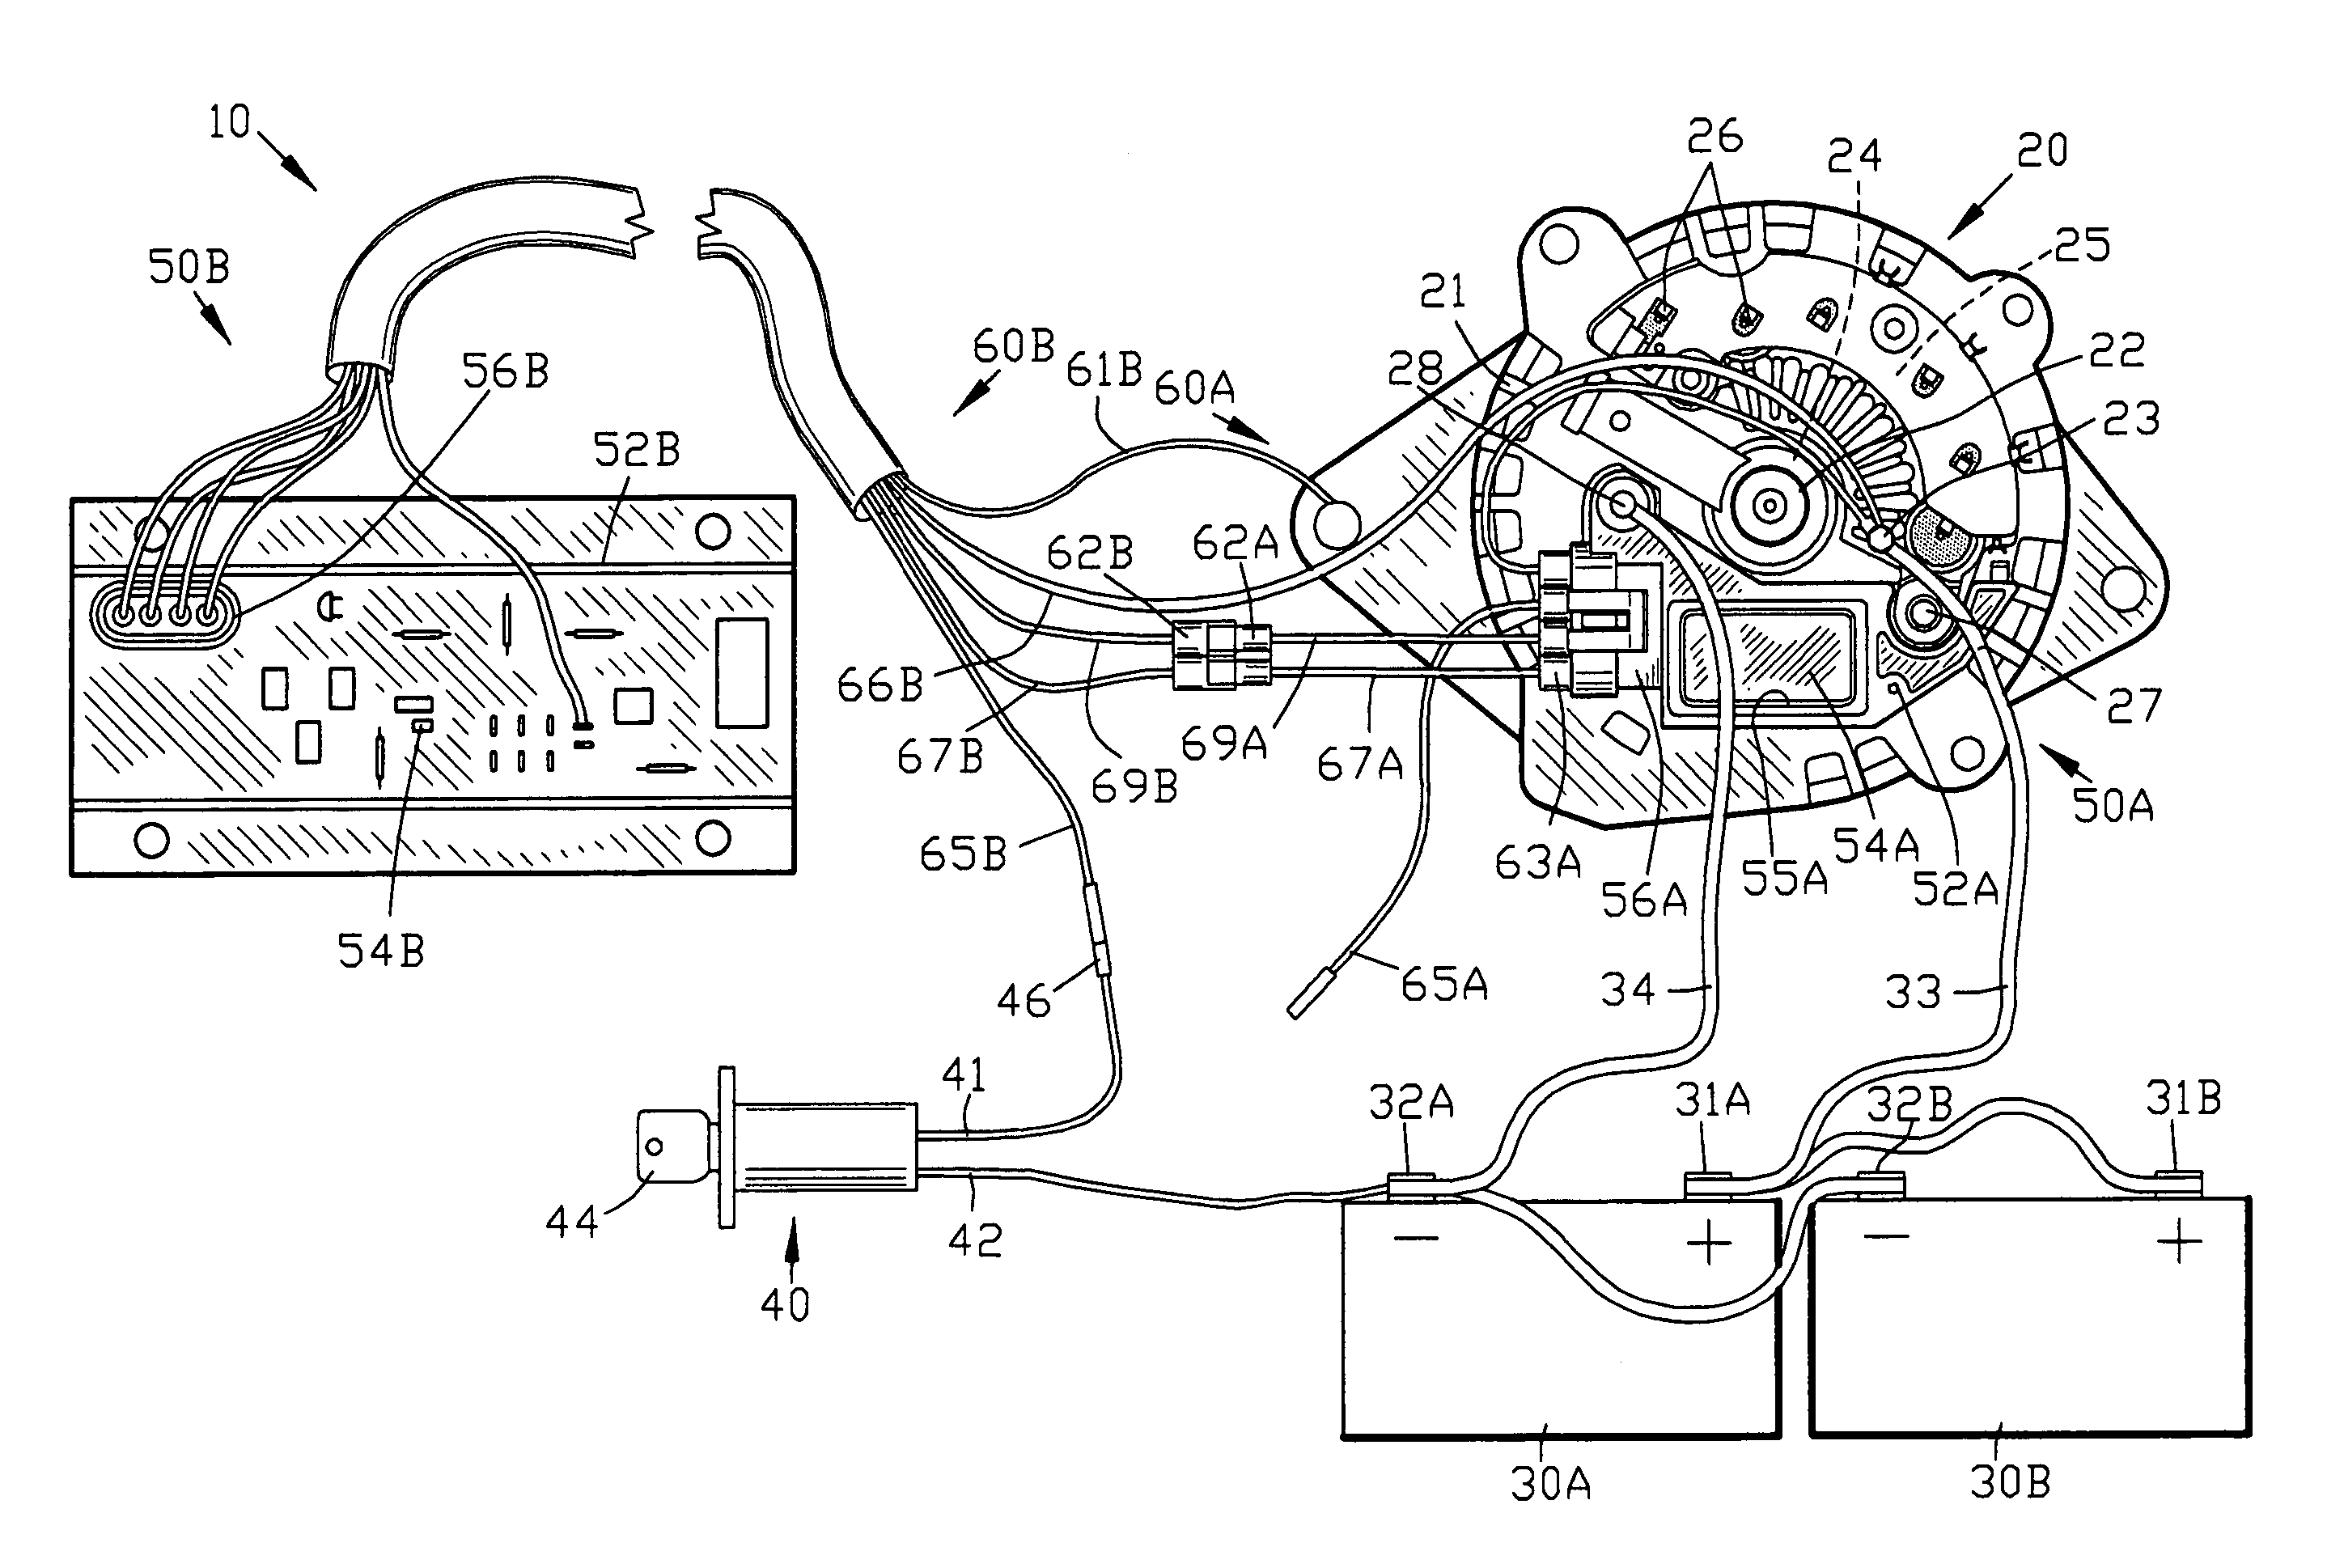 US07245111 20070717 D00000 patent us7245111 regulator system for alternator google patents valeo alternator regulator wiring diagram at readyjetset.co